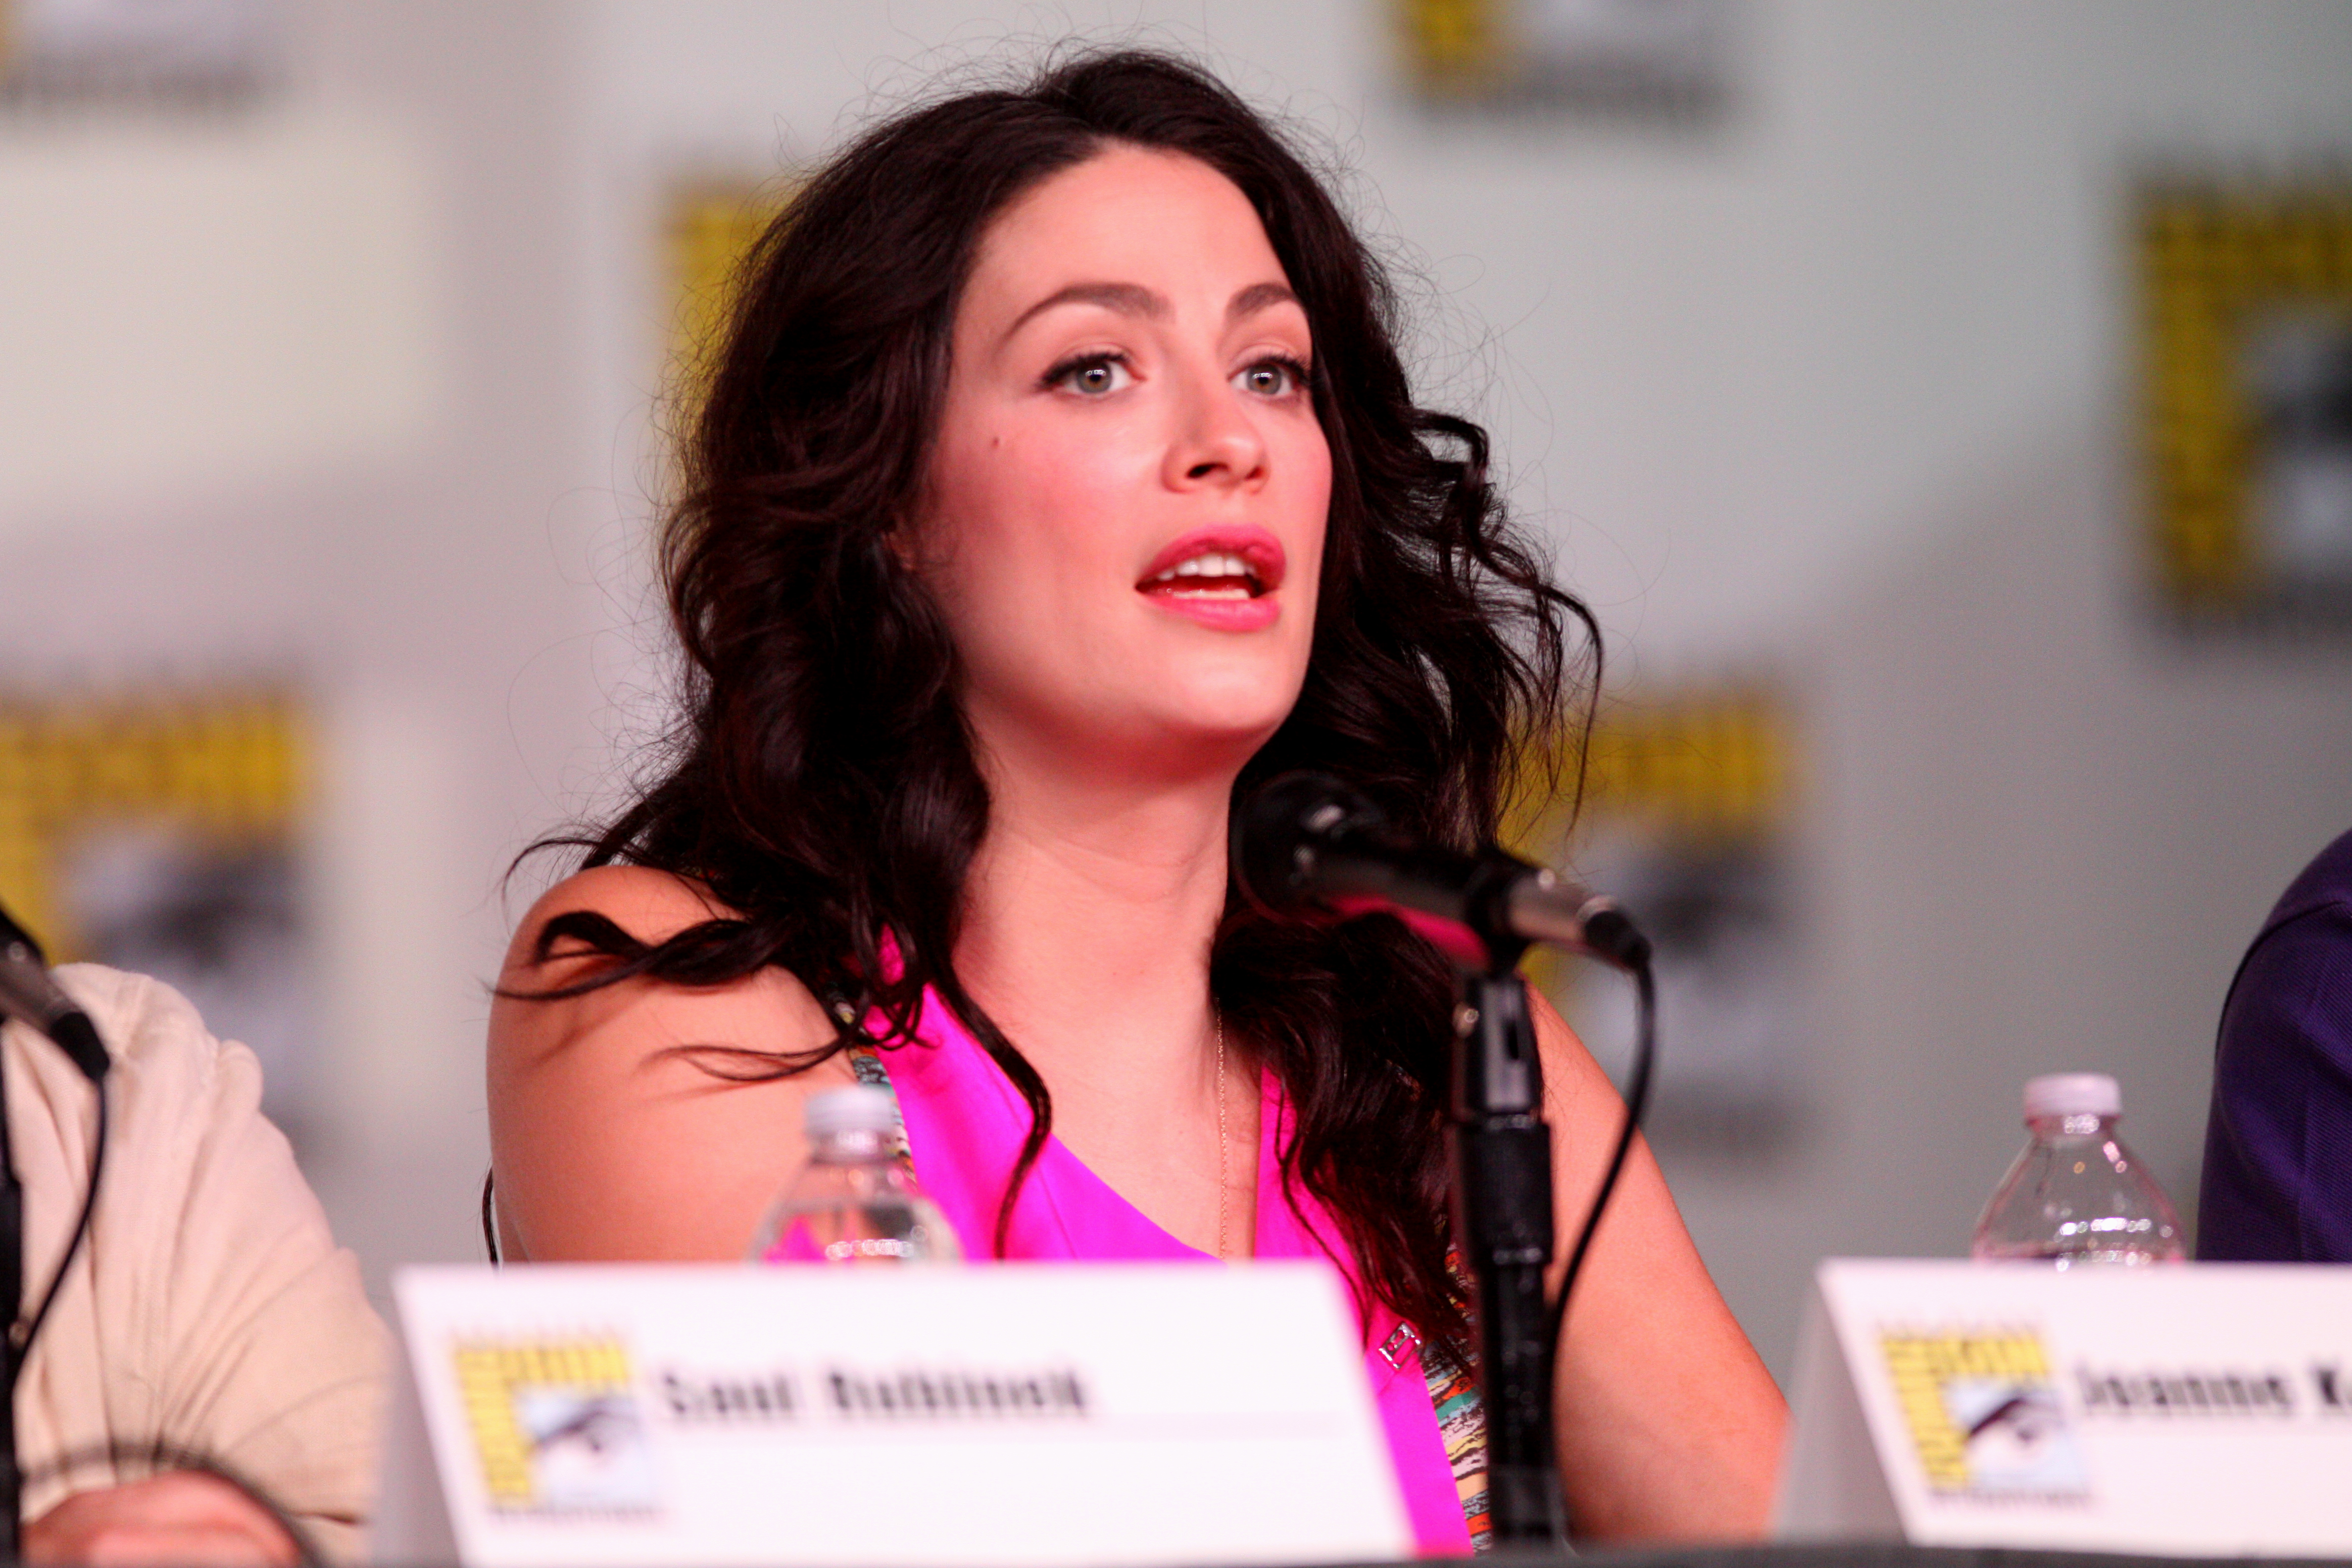 joanne kelly twitterjoanne kelly wiki, joanne kelly livingston, joanne kelly castle, joanne kelly rowling, joanne kelly husband, joanne kelly wallpaper, joanne kelly instagram, joanne kelly facebook, joanne kelly supernatural, joanne kelly twitter, joanne kelly, joanne kelly boyfriend, joanne kelly warehouse 13, joanne kelly actress, joanne kelly married, joanne kelly height